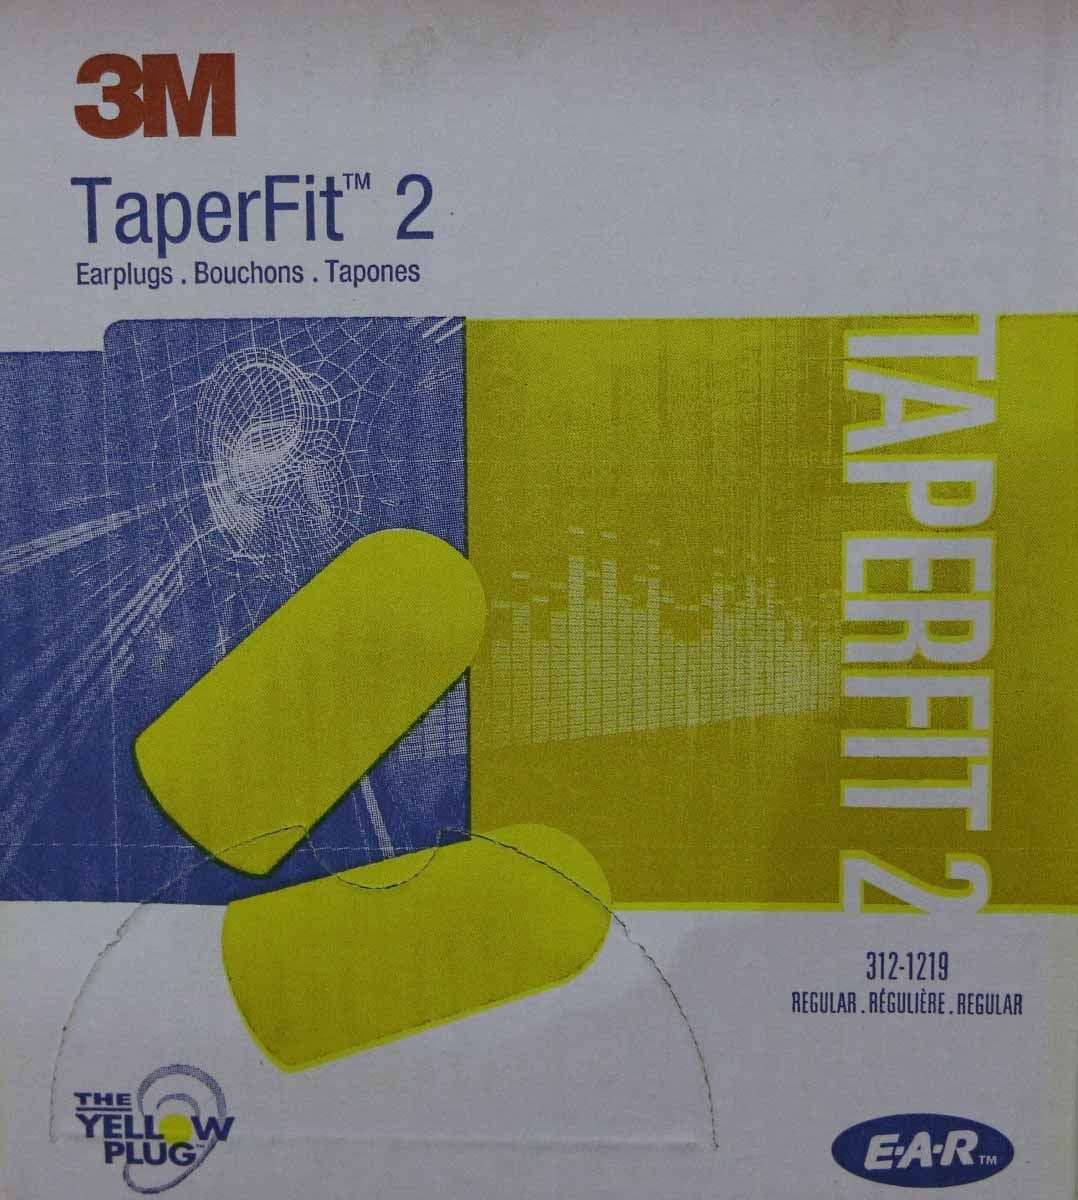 3M TaperFit2 Single-Use Earplugs